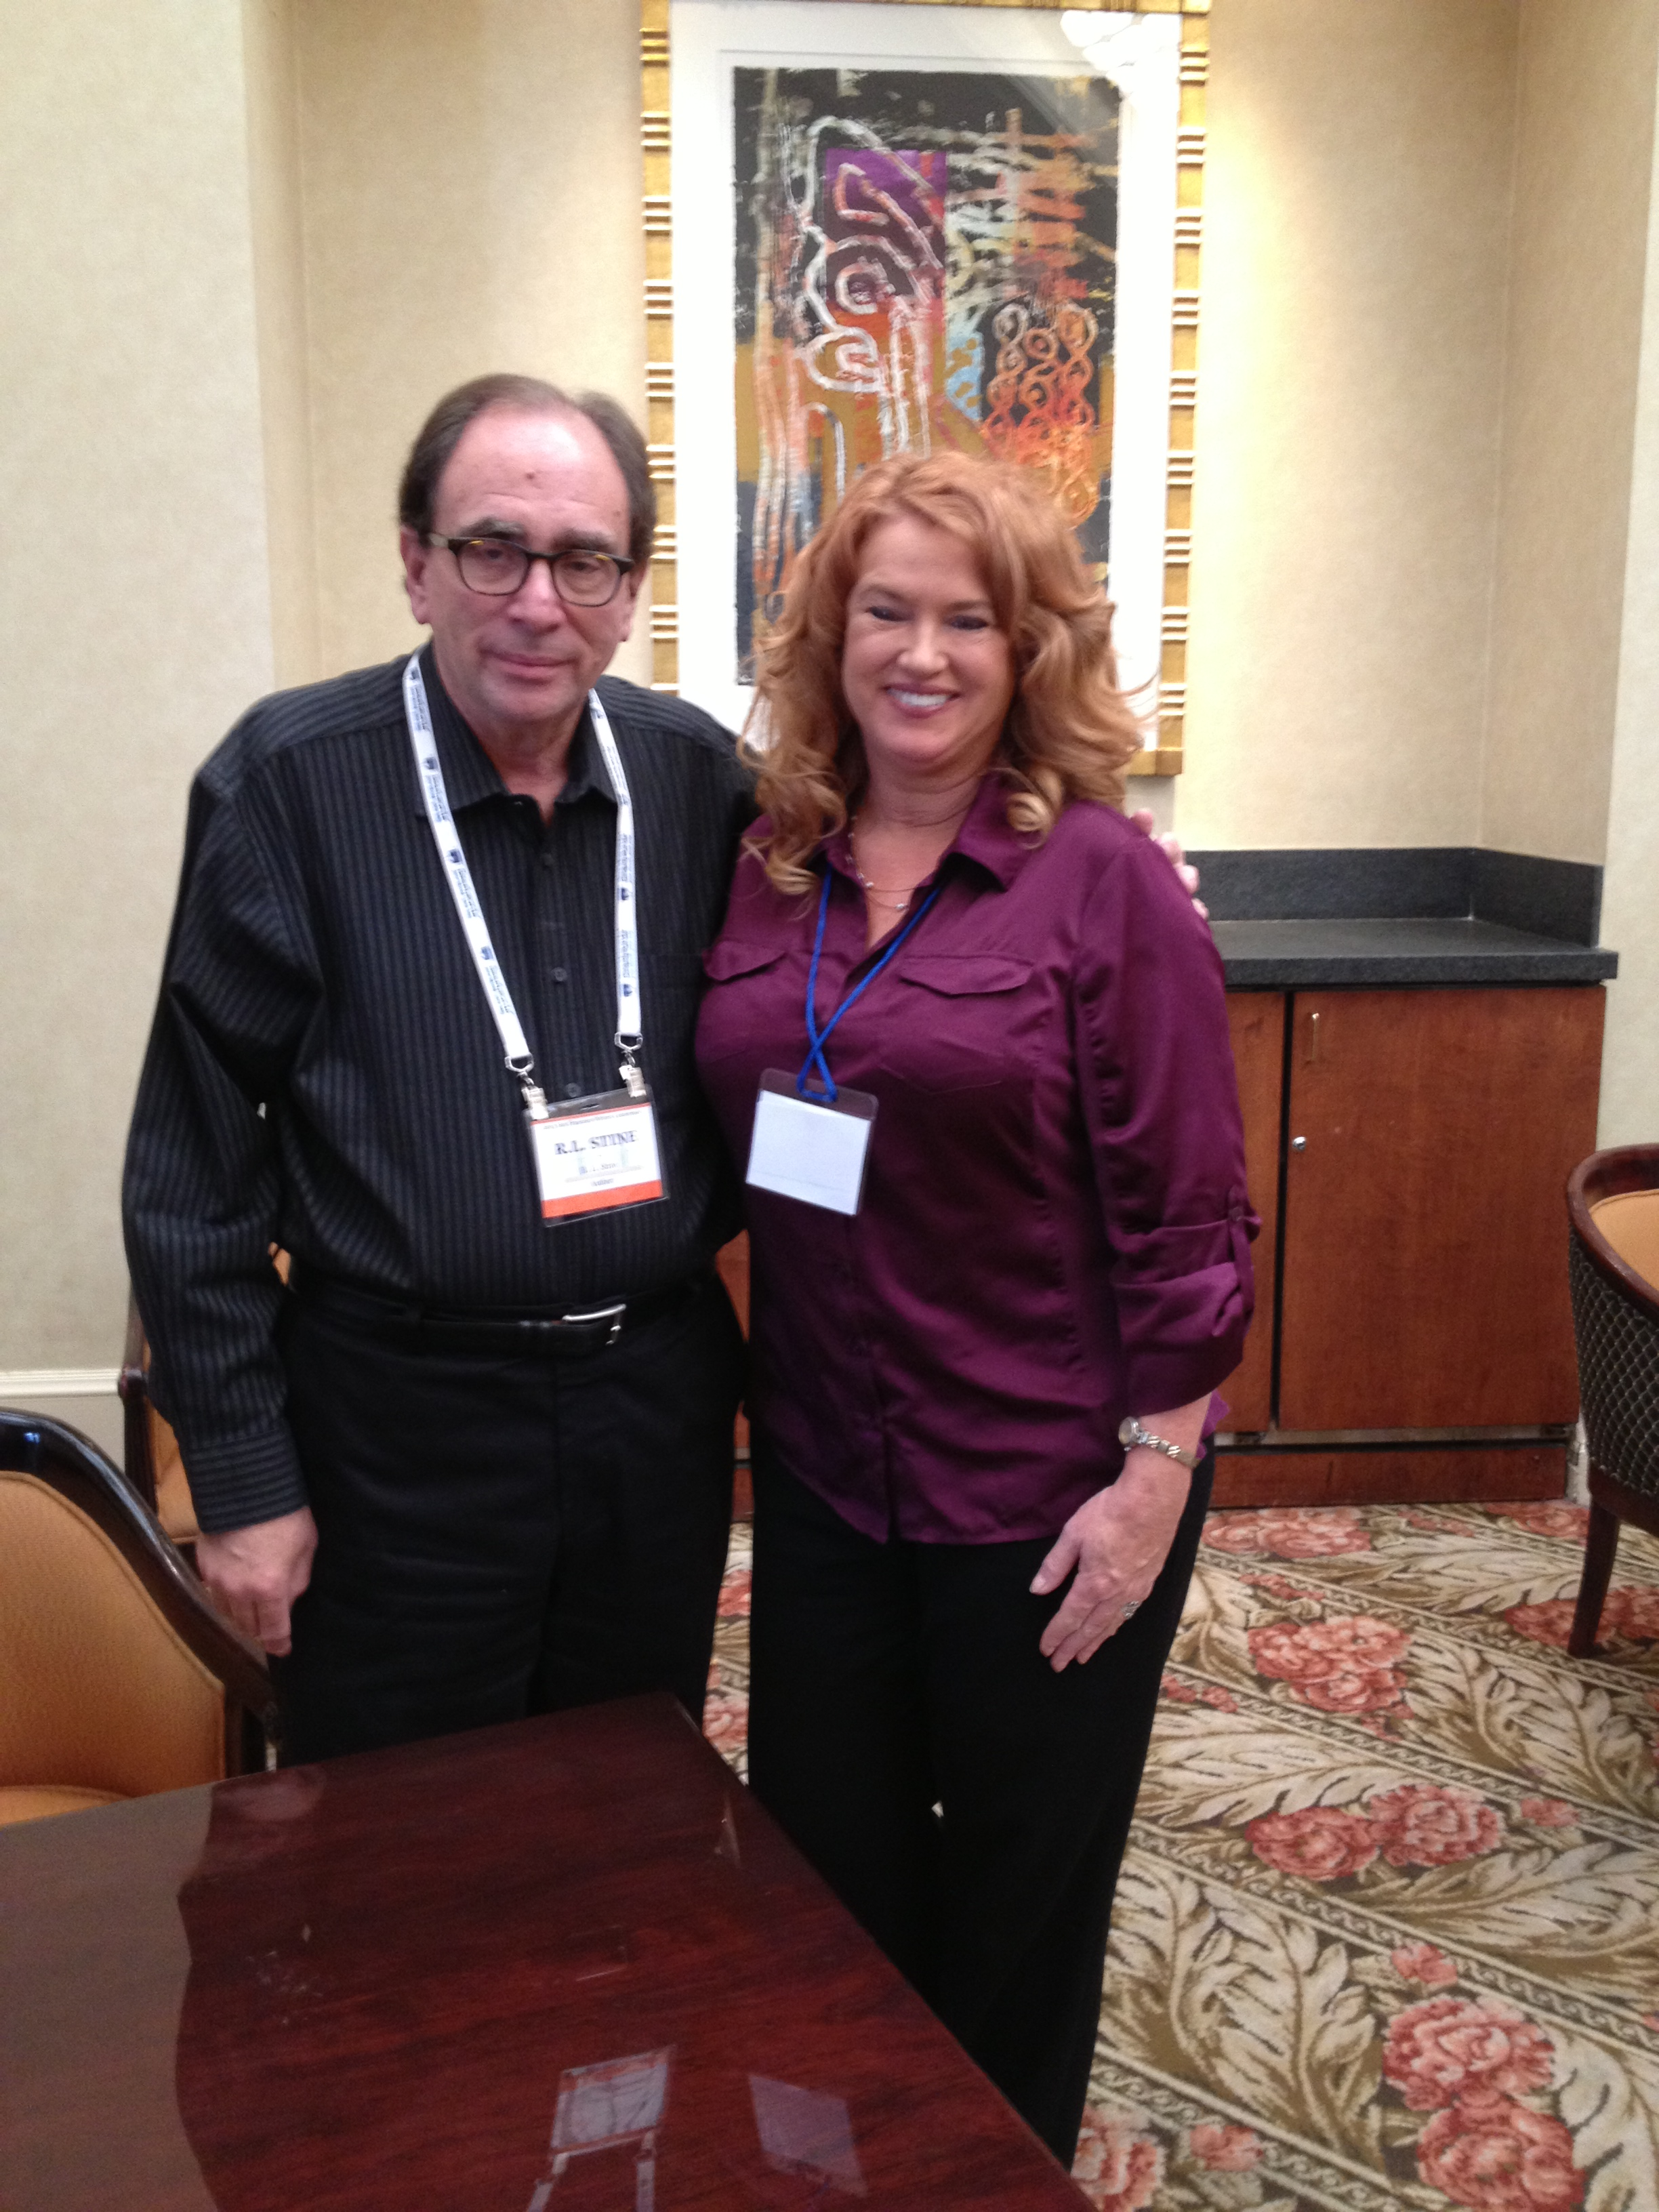 R.L. Stine at the San Francisco Writers Conference